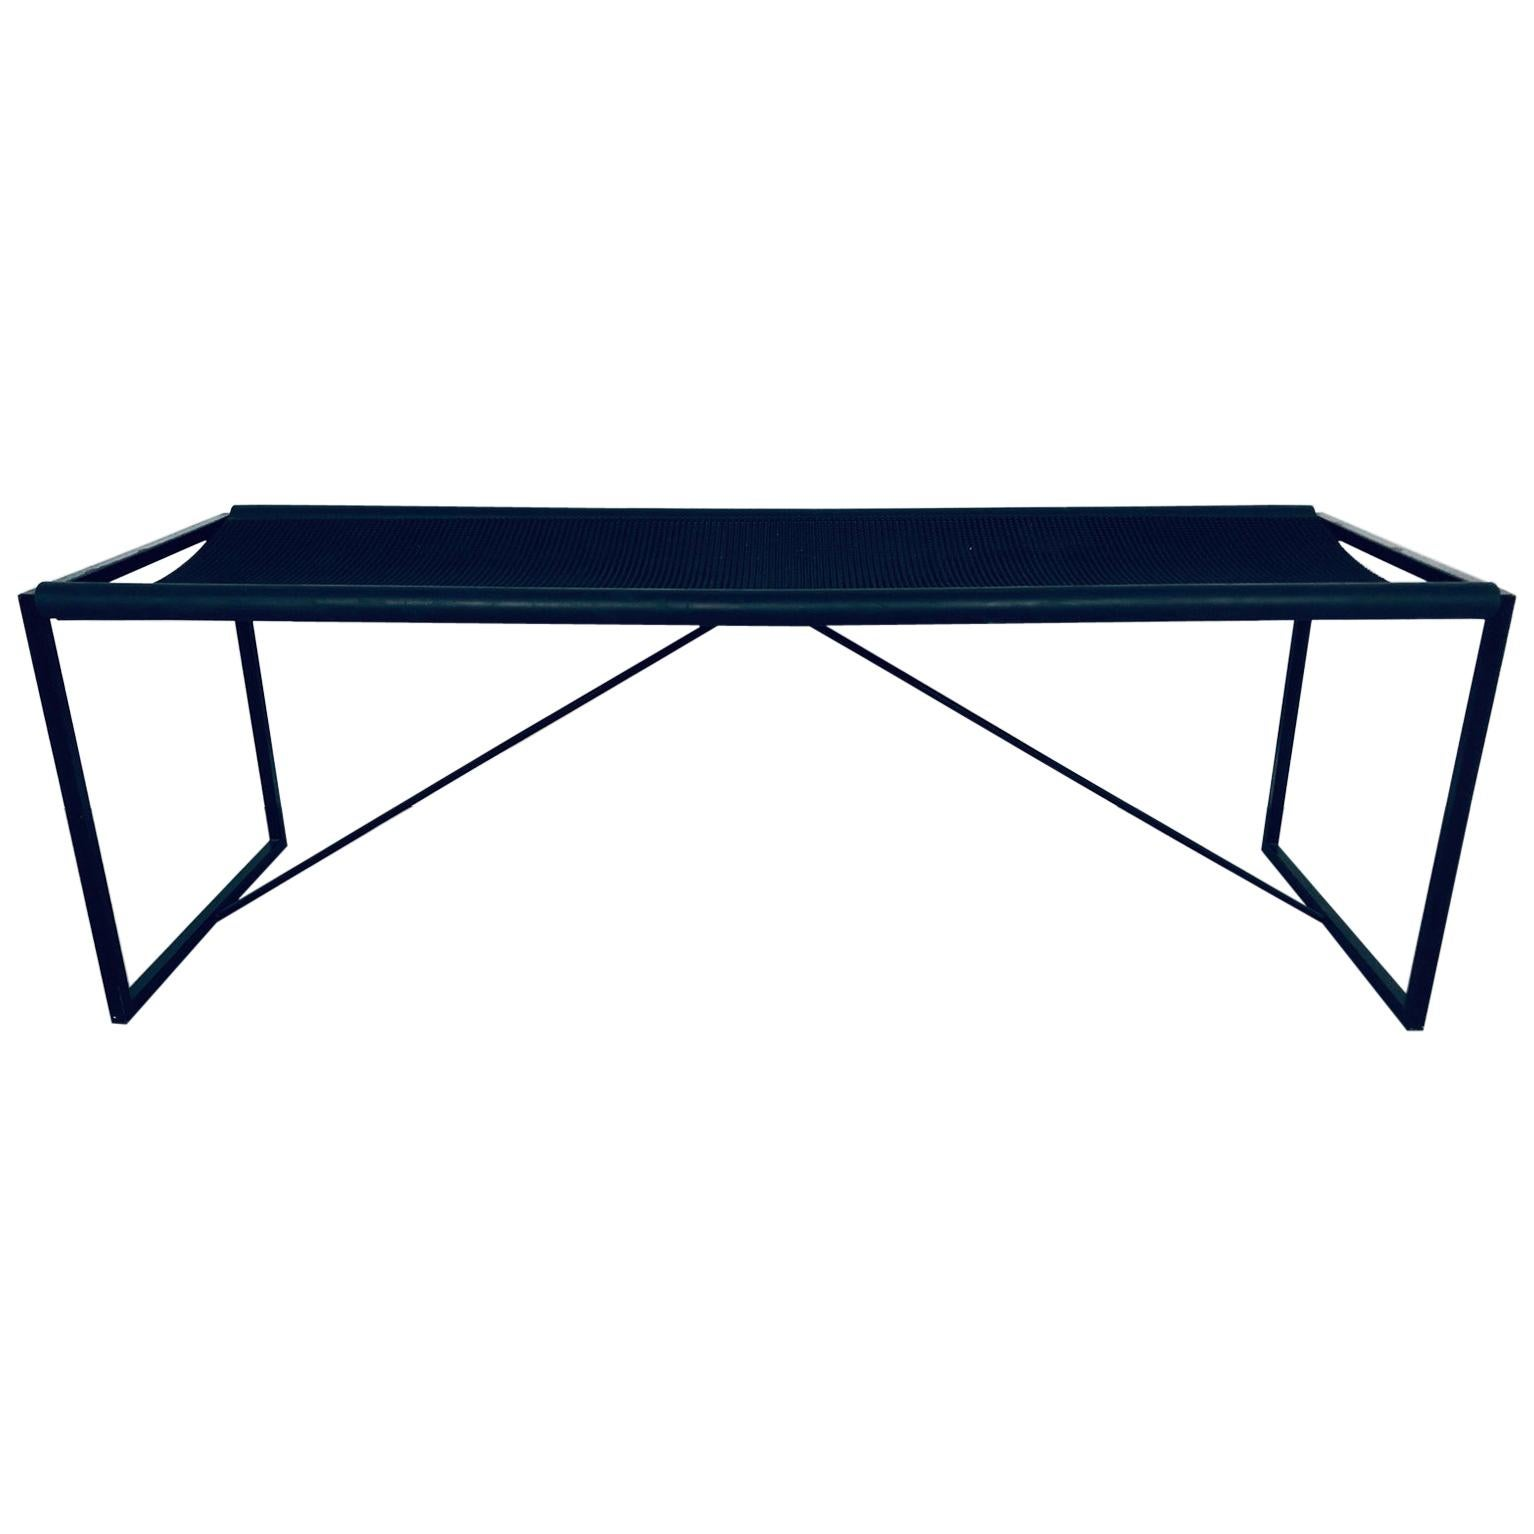 Maurizio Peregalli Modernist Bench for Zues, Italy, 1980s